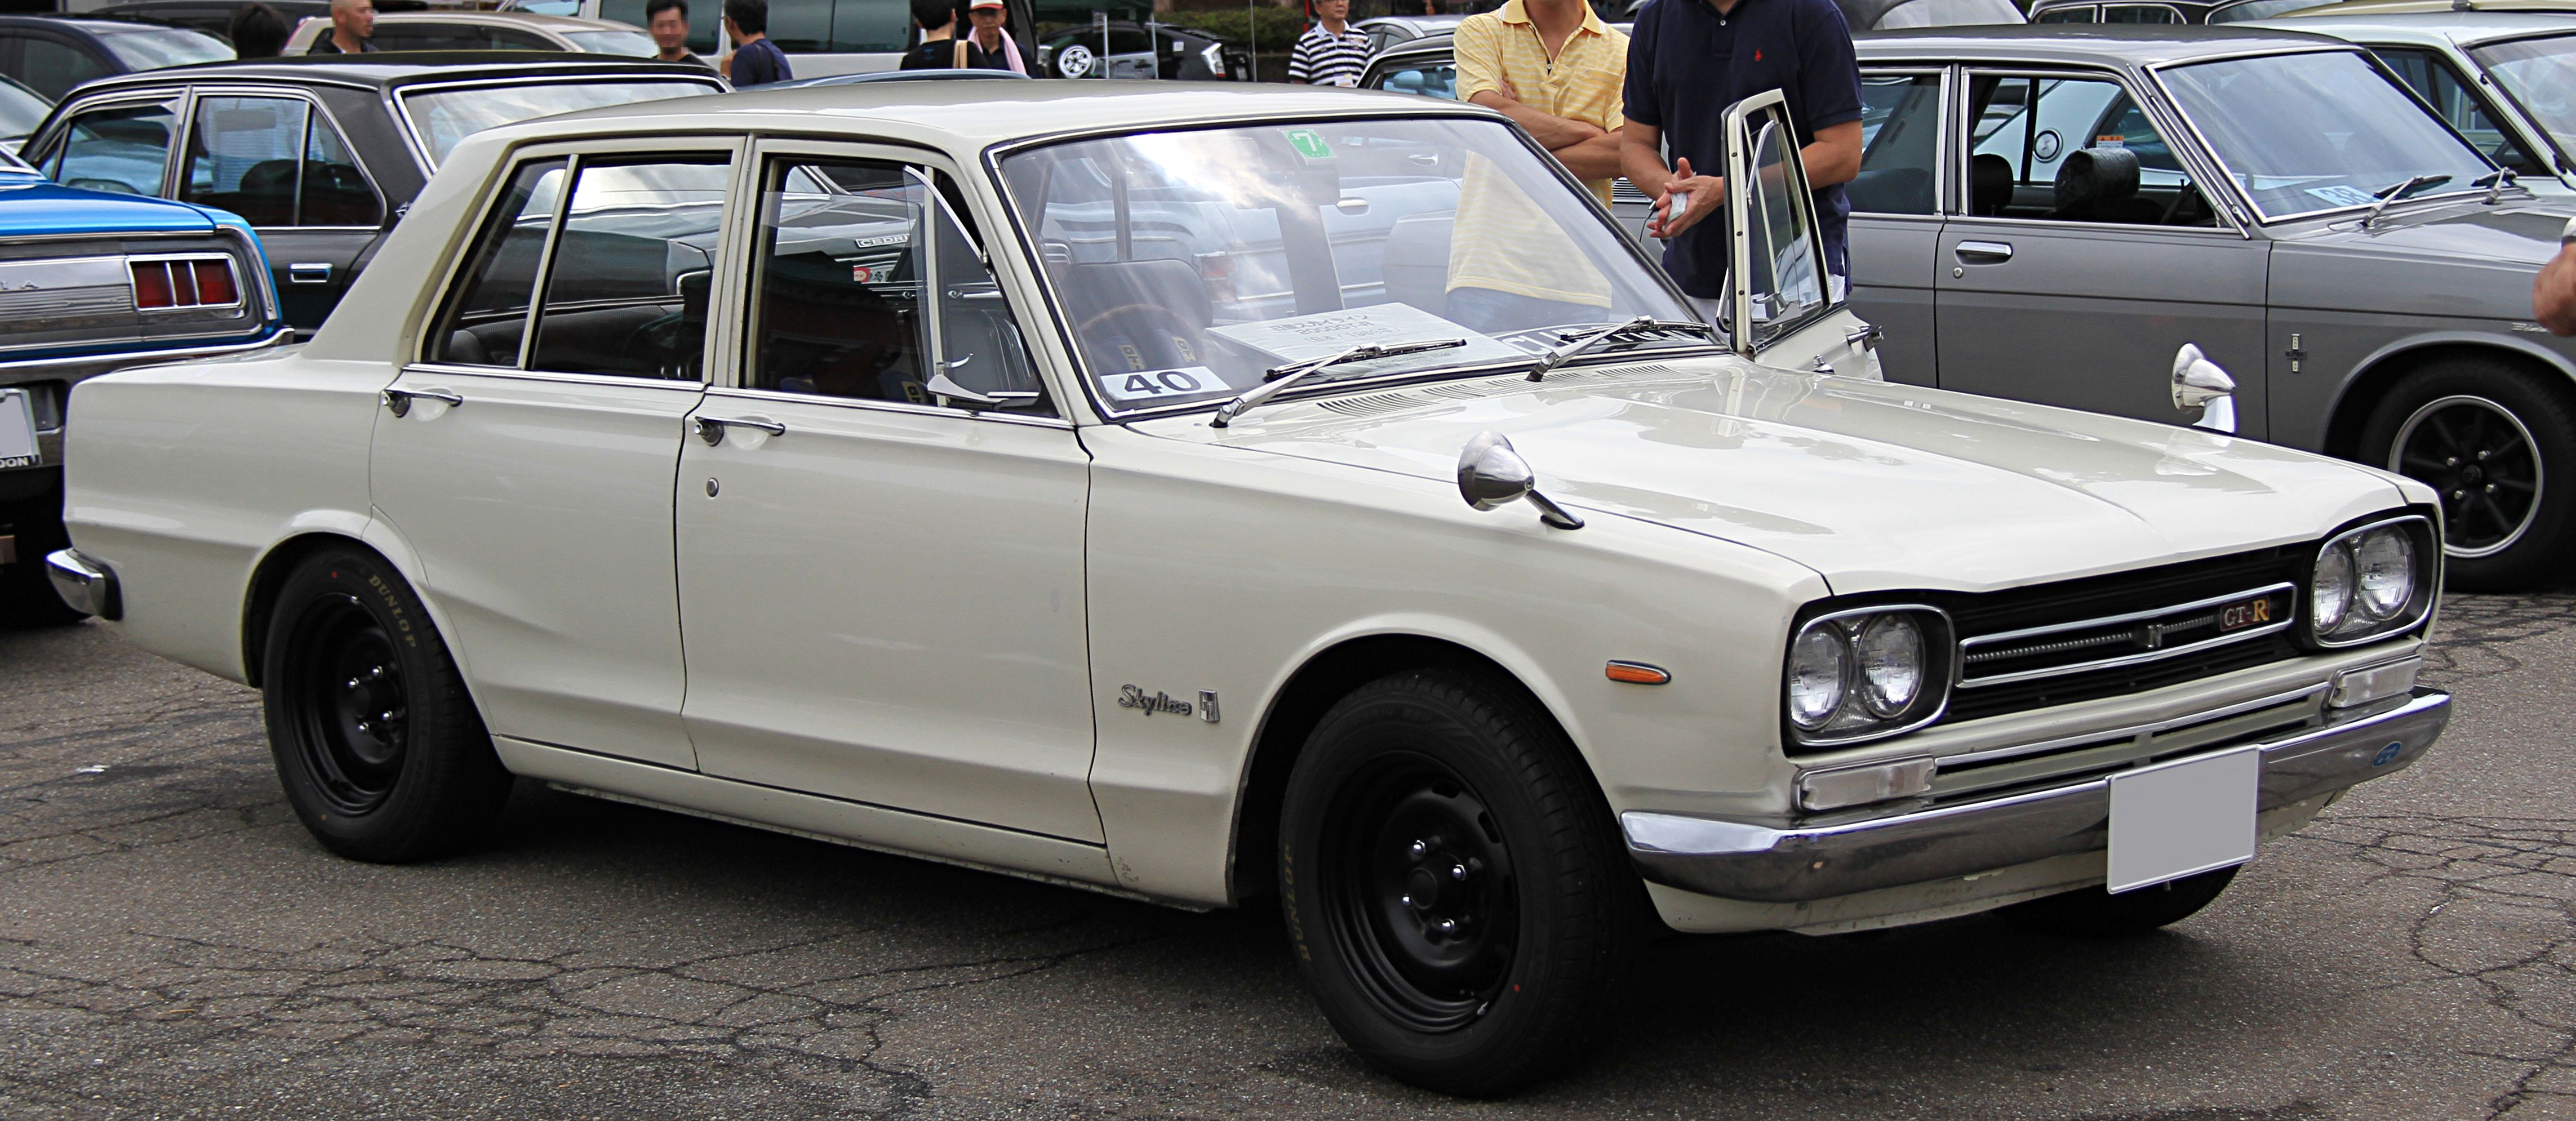 1969 Nissan Skyline Photos, Informations, Articles ...